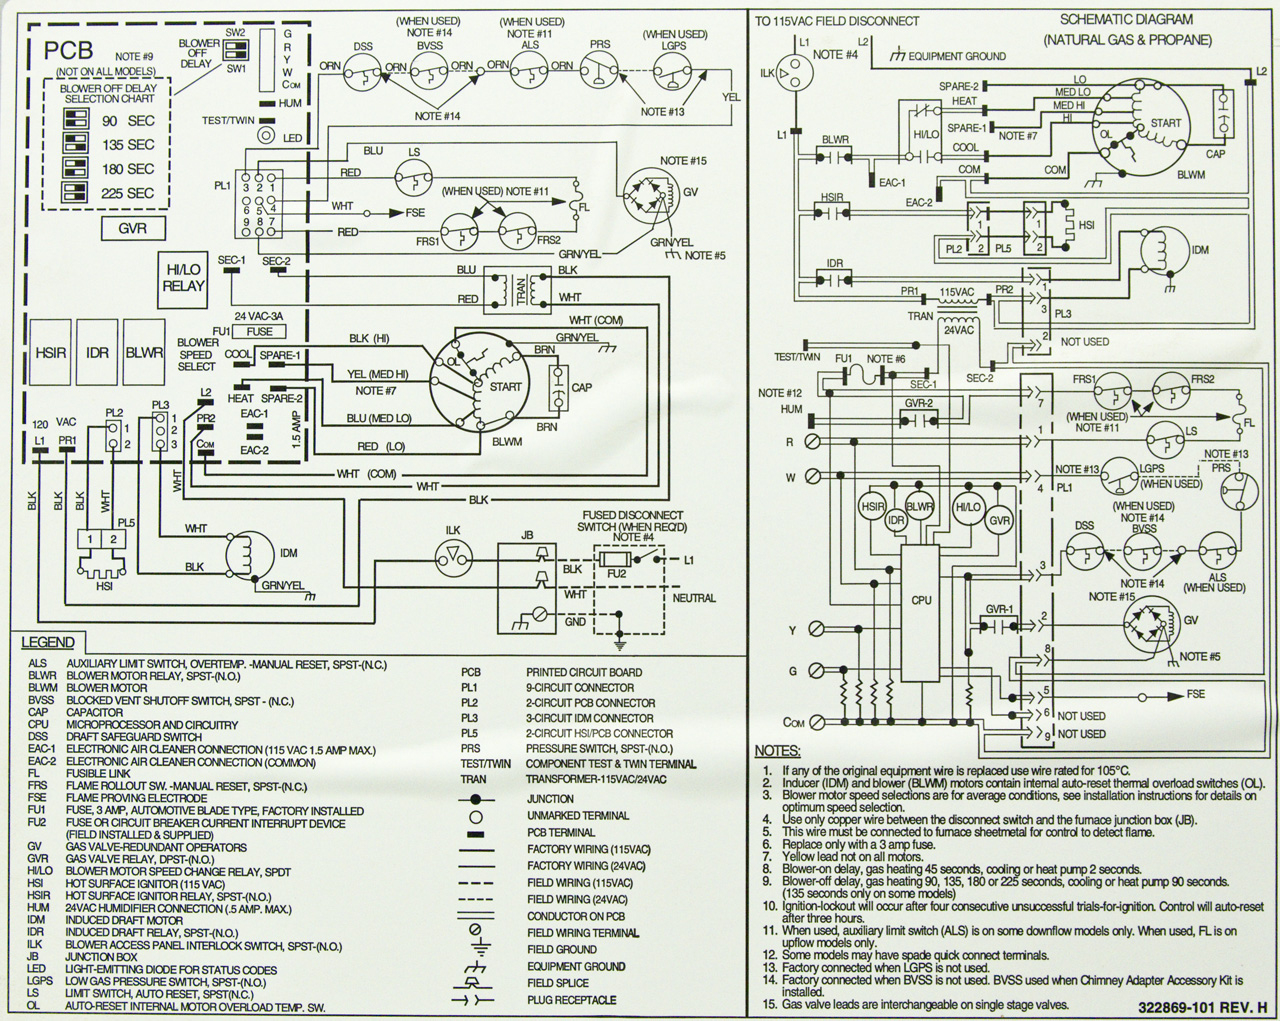 Carrier Heater Wiring Diagram | Manual E-Books - Carrier Wiring Diagram